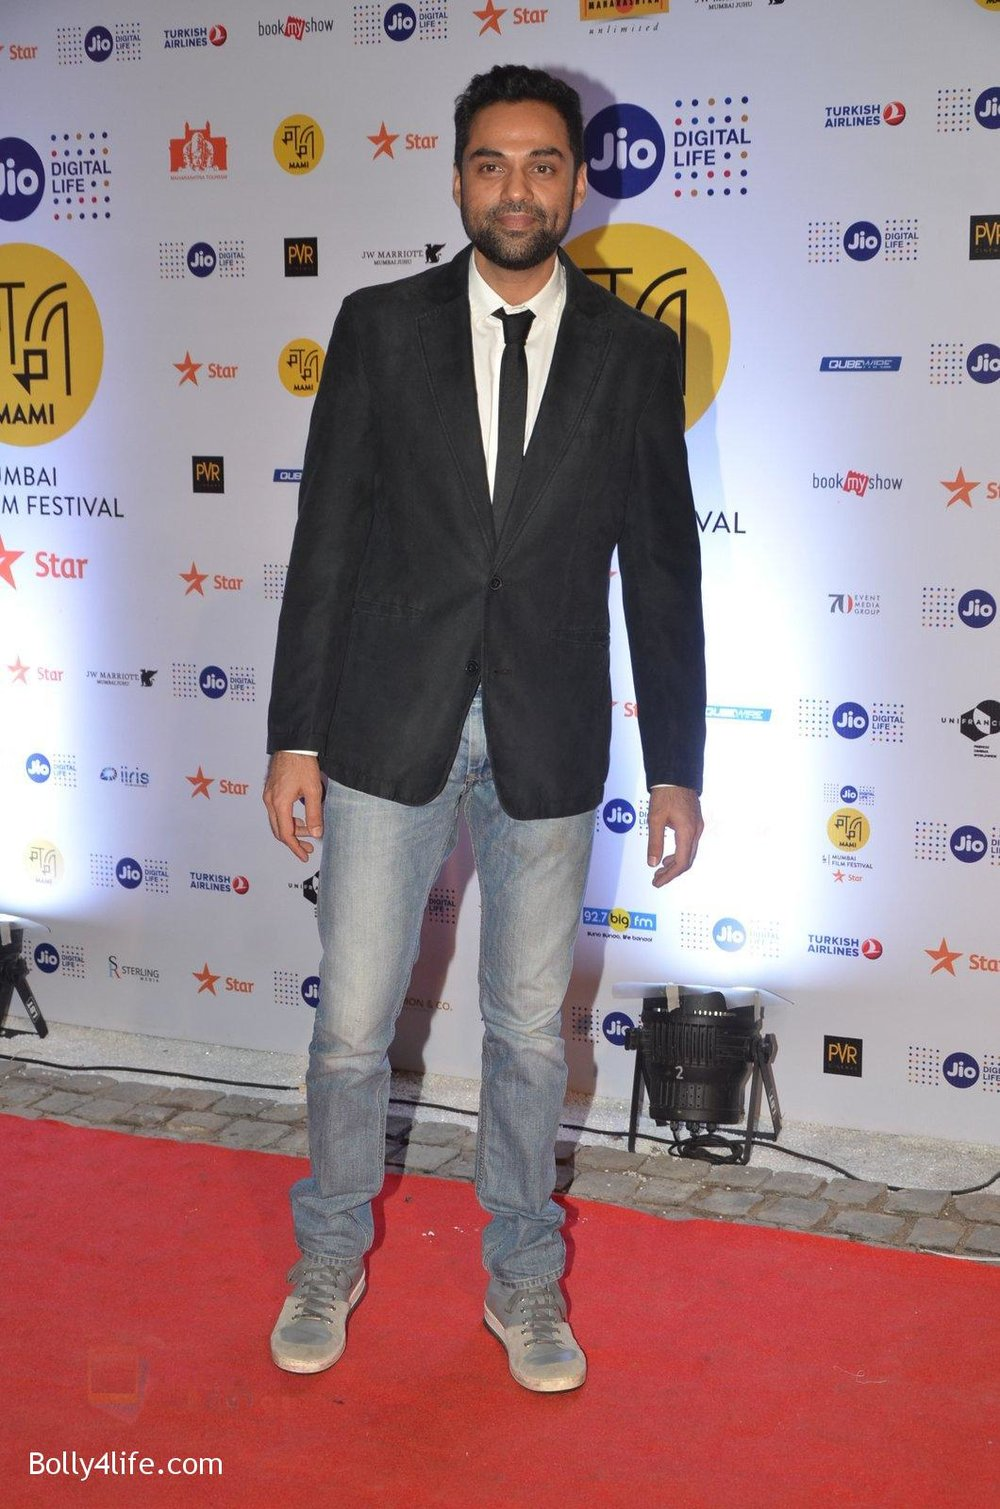 Abhay-Deol-at-MAMI-Film-Festival-2016-on-20th-Oct-2016-135.jpg